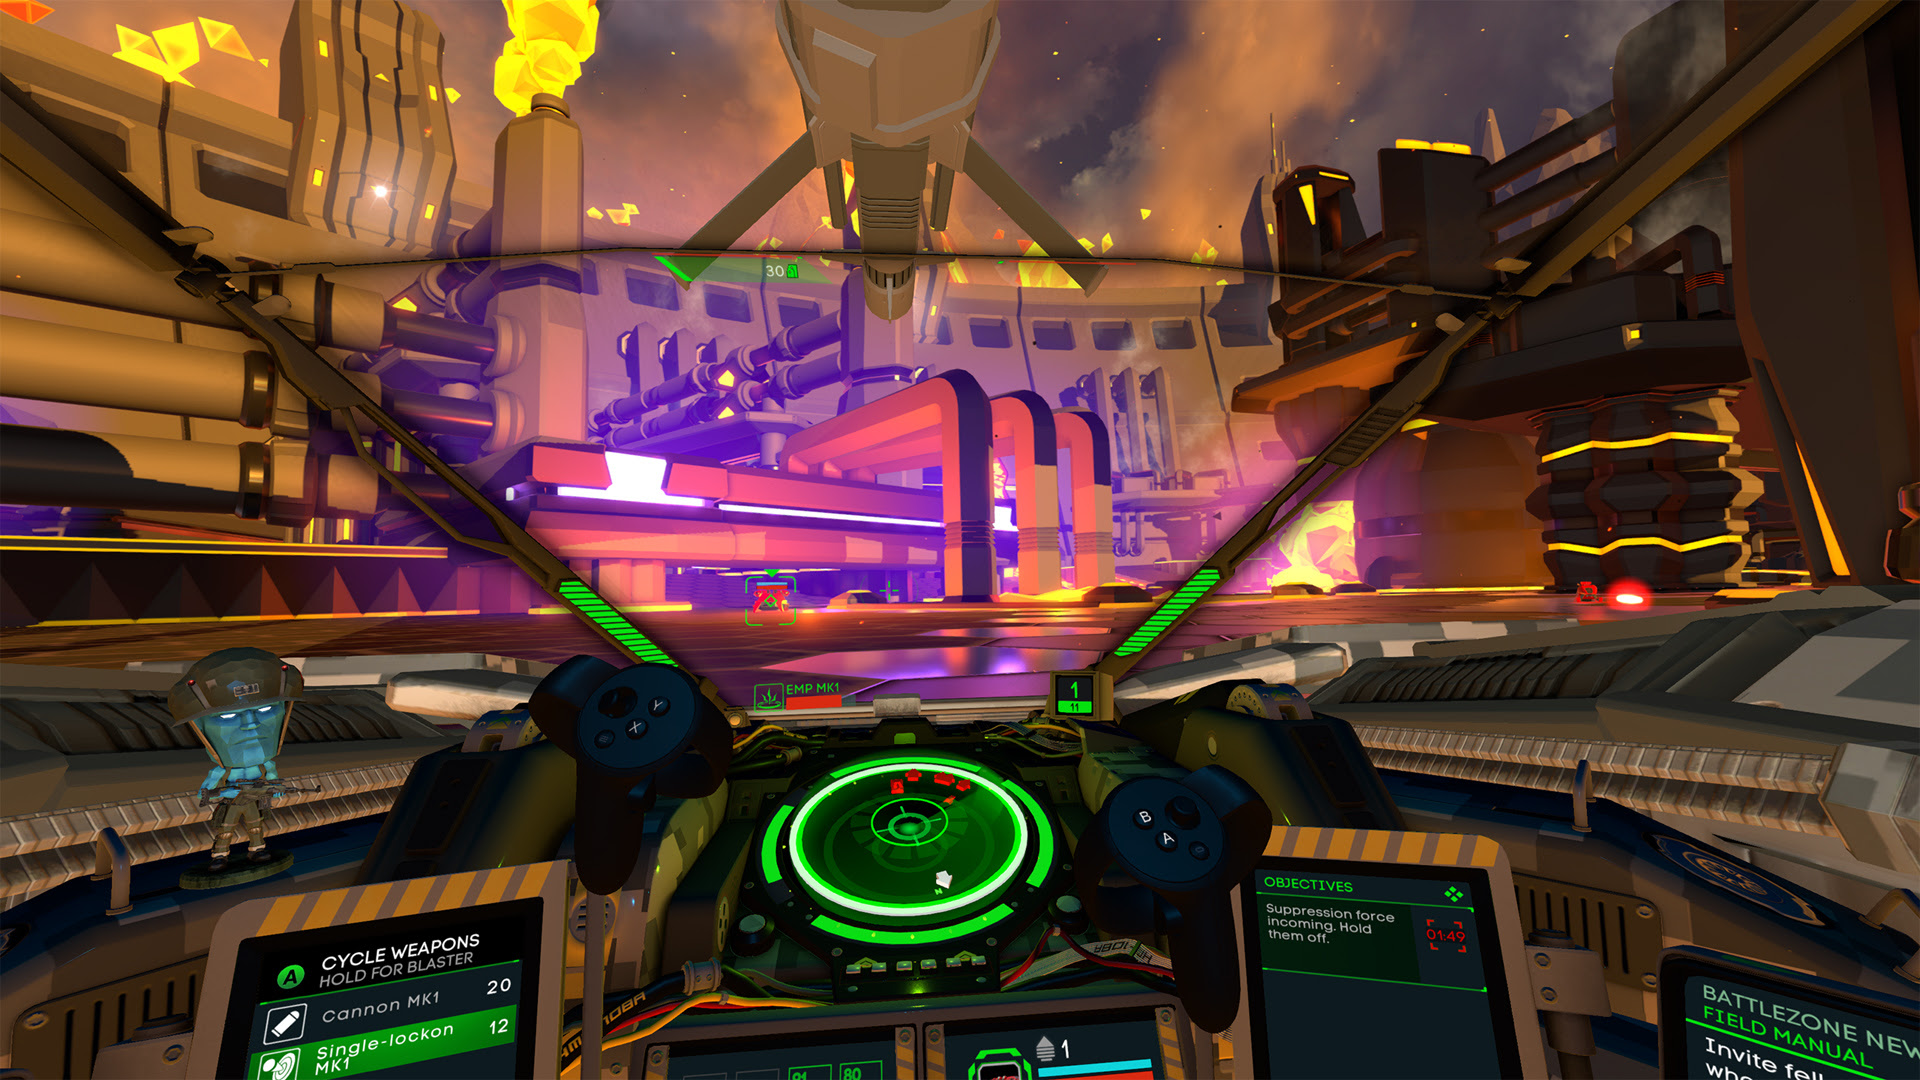 Battlezone is worth checking out on Vive and Oculus Rift screenshot